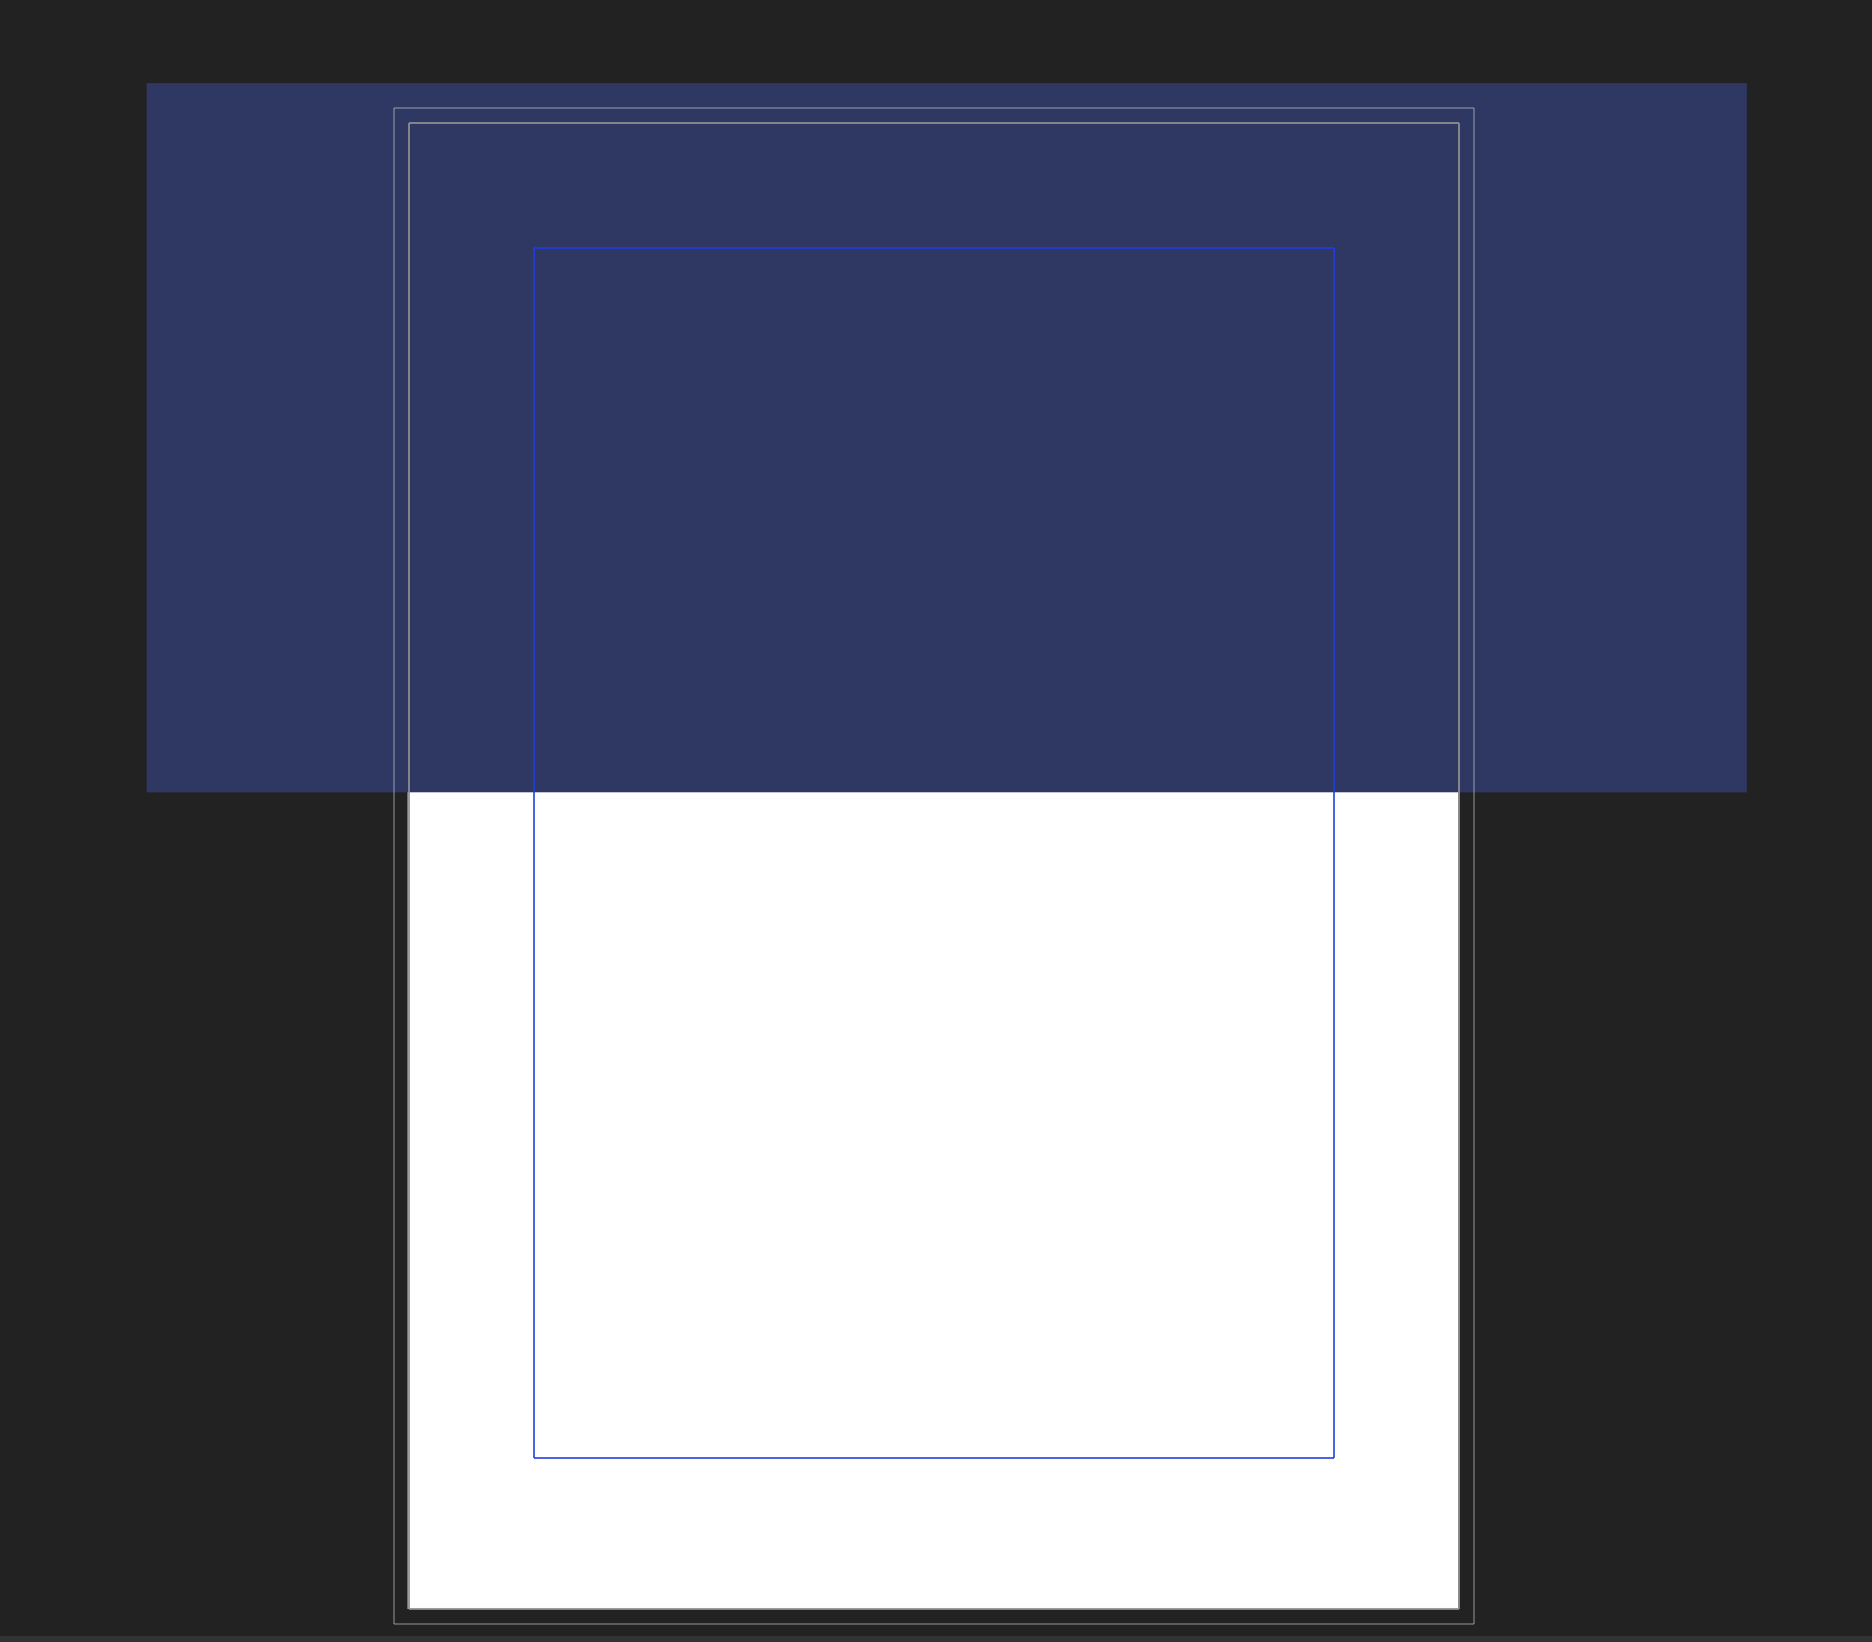 Clip to canvas should crop out bleed area - Publisher beta